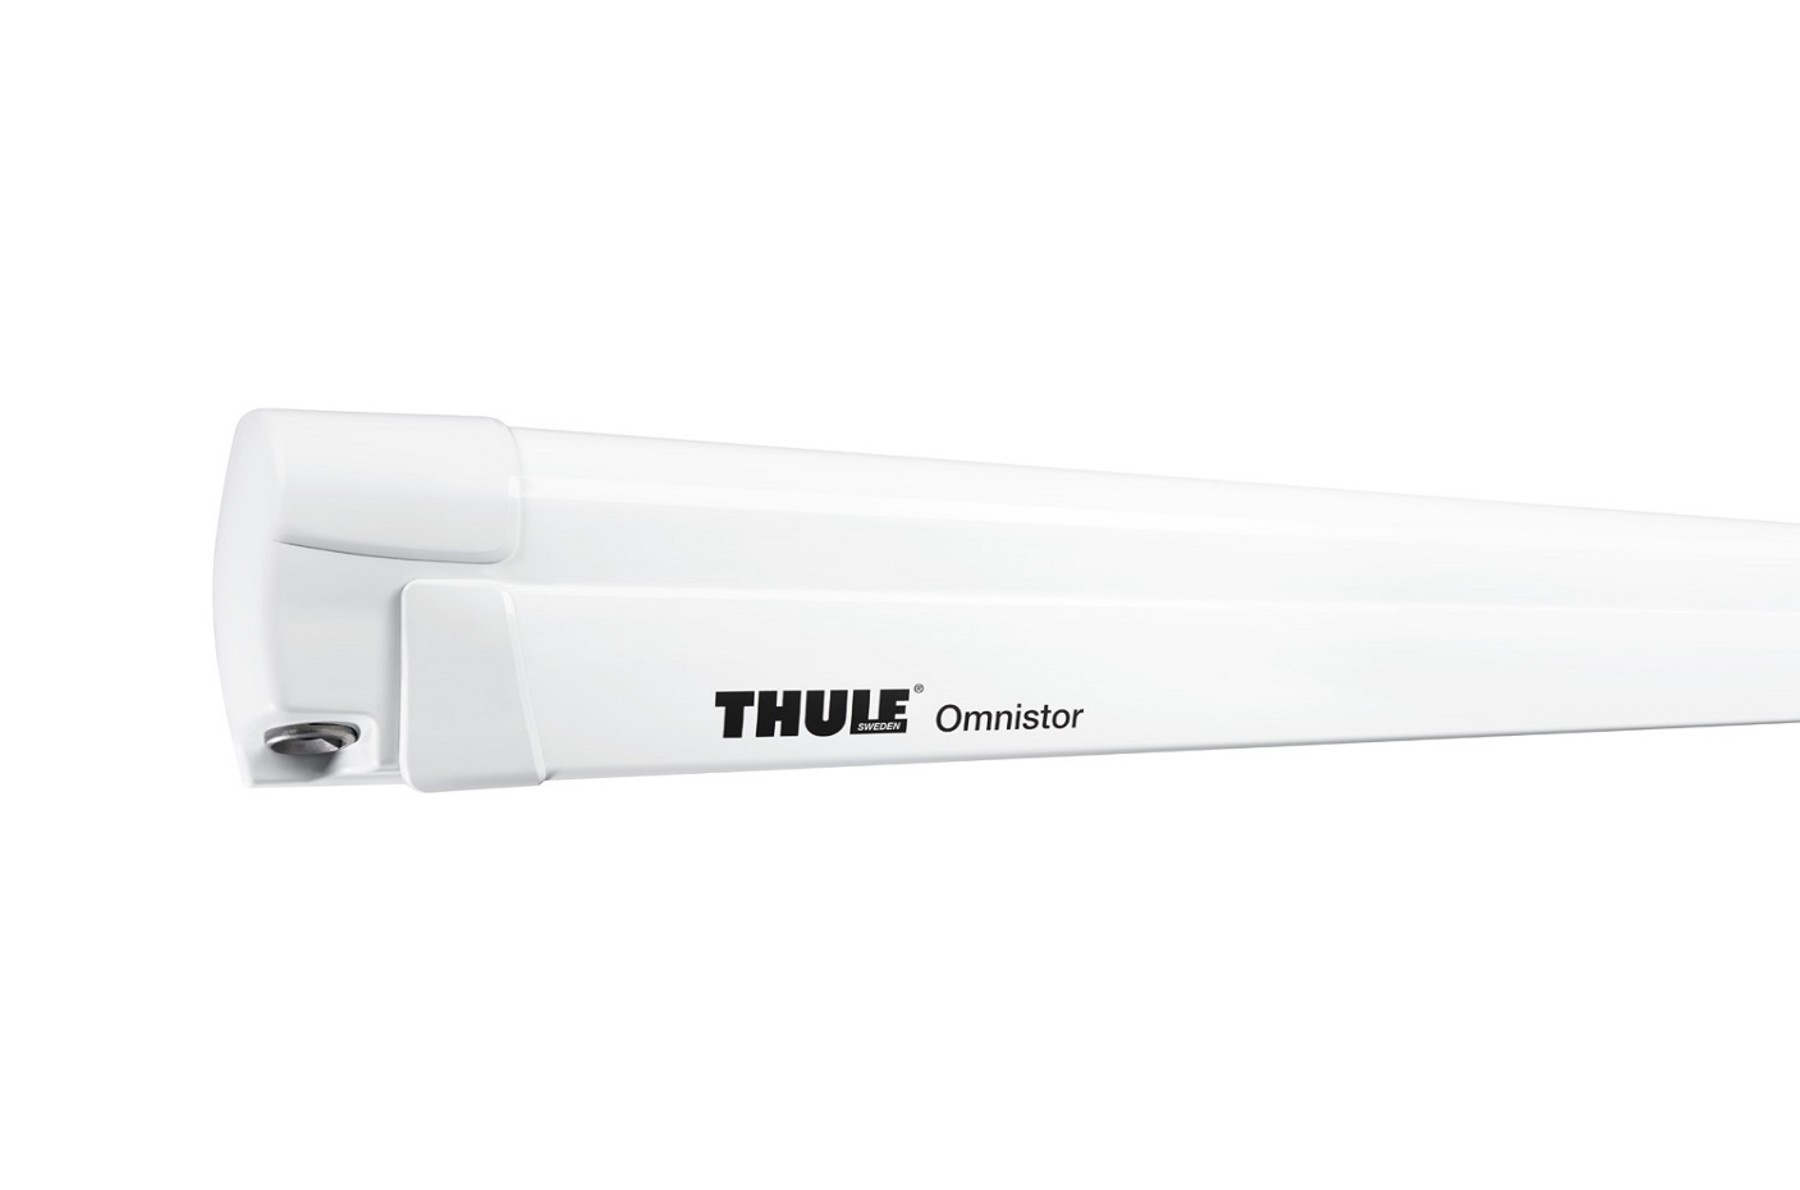 Thule omnistor 8000 white awning caravan motorhome wall mounted